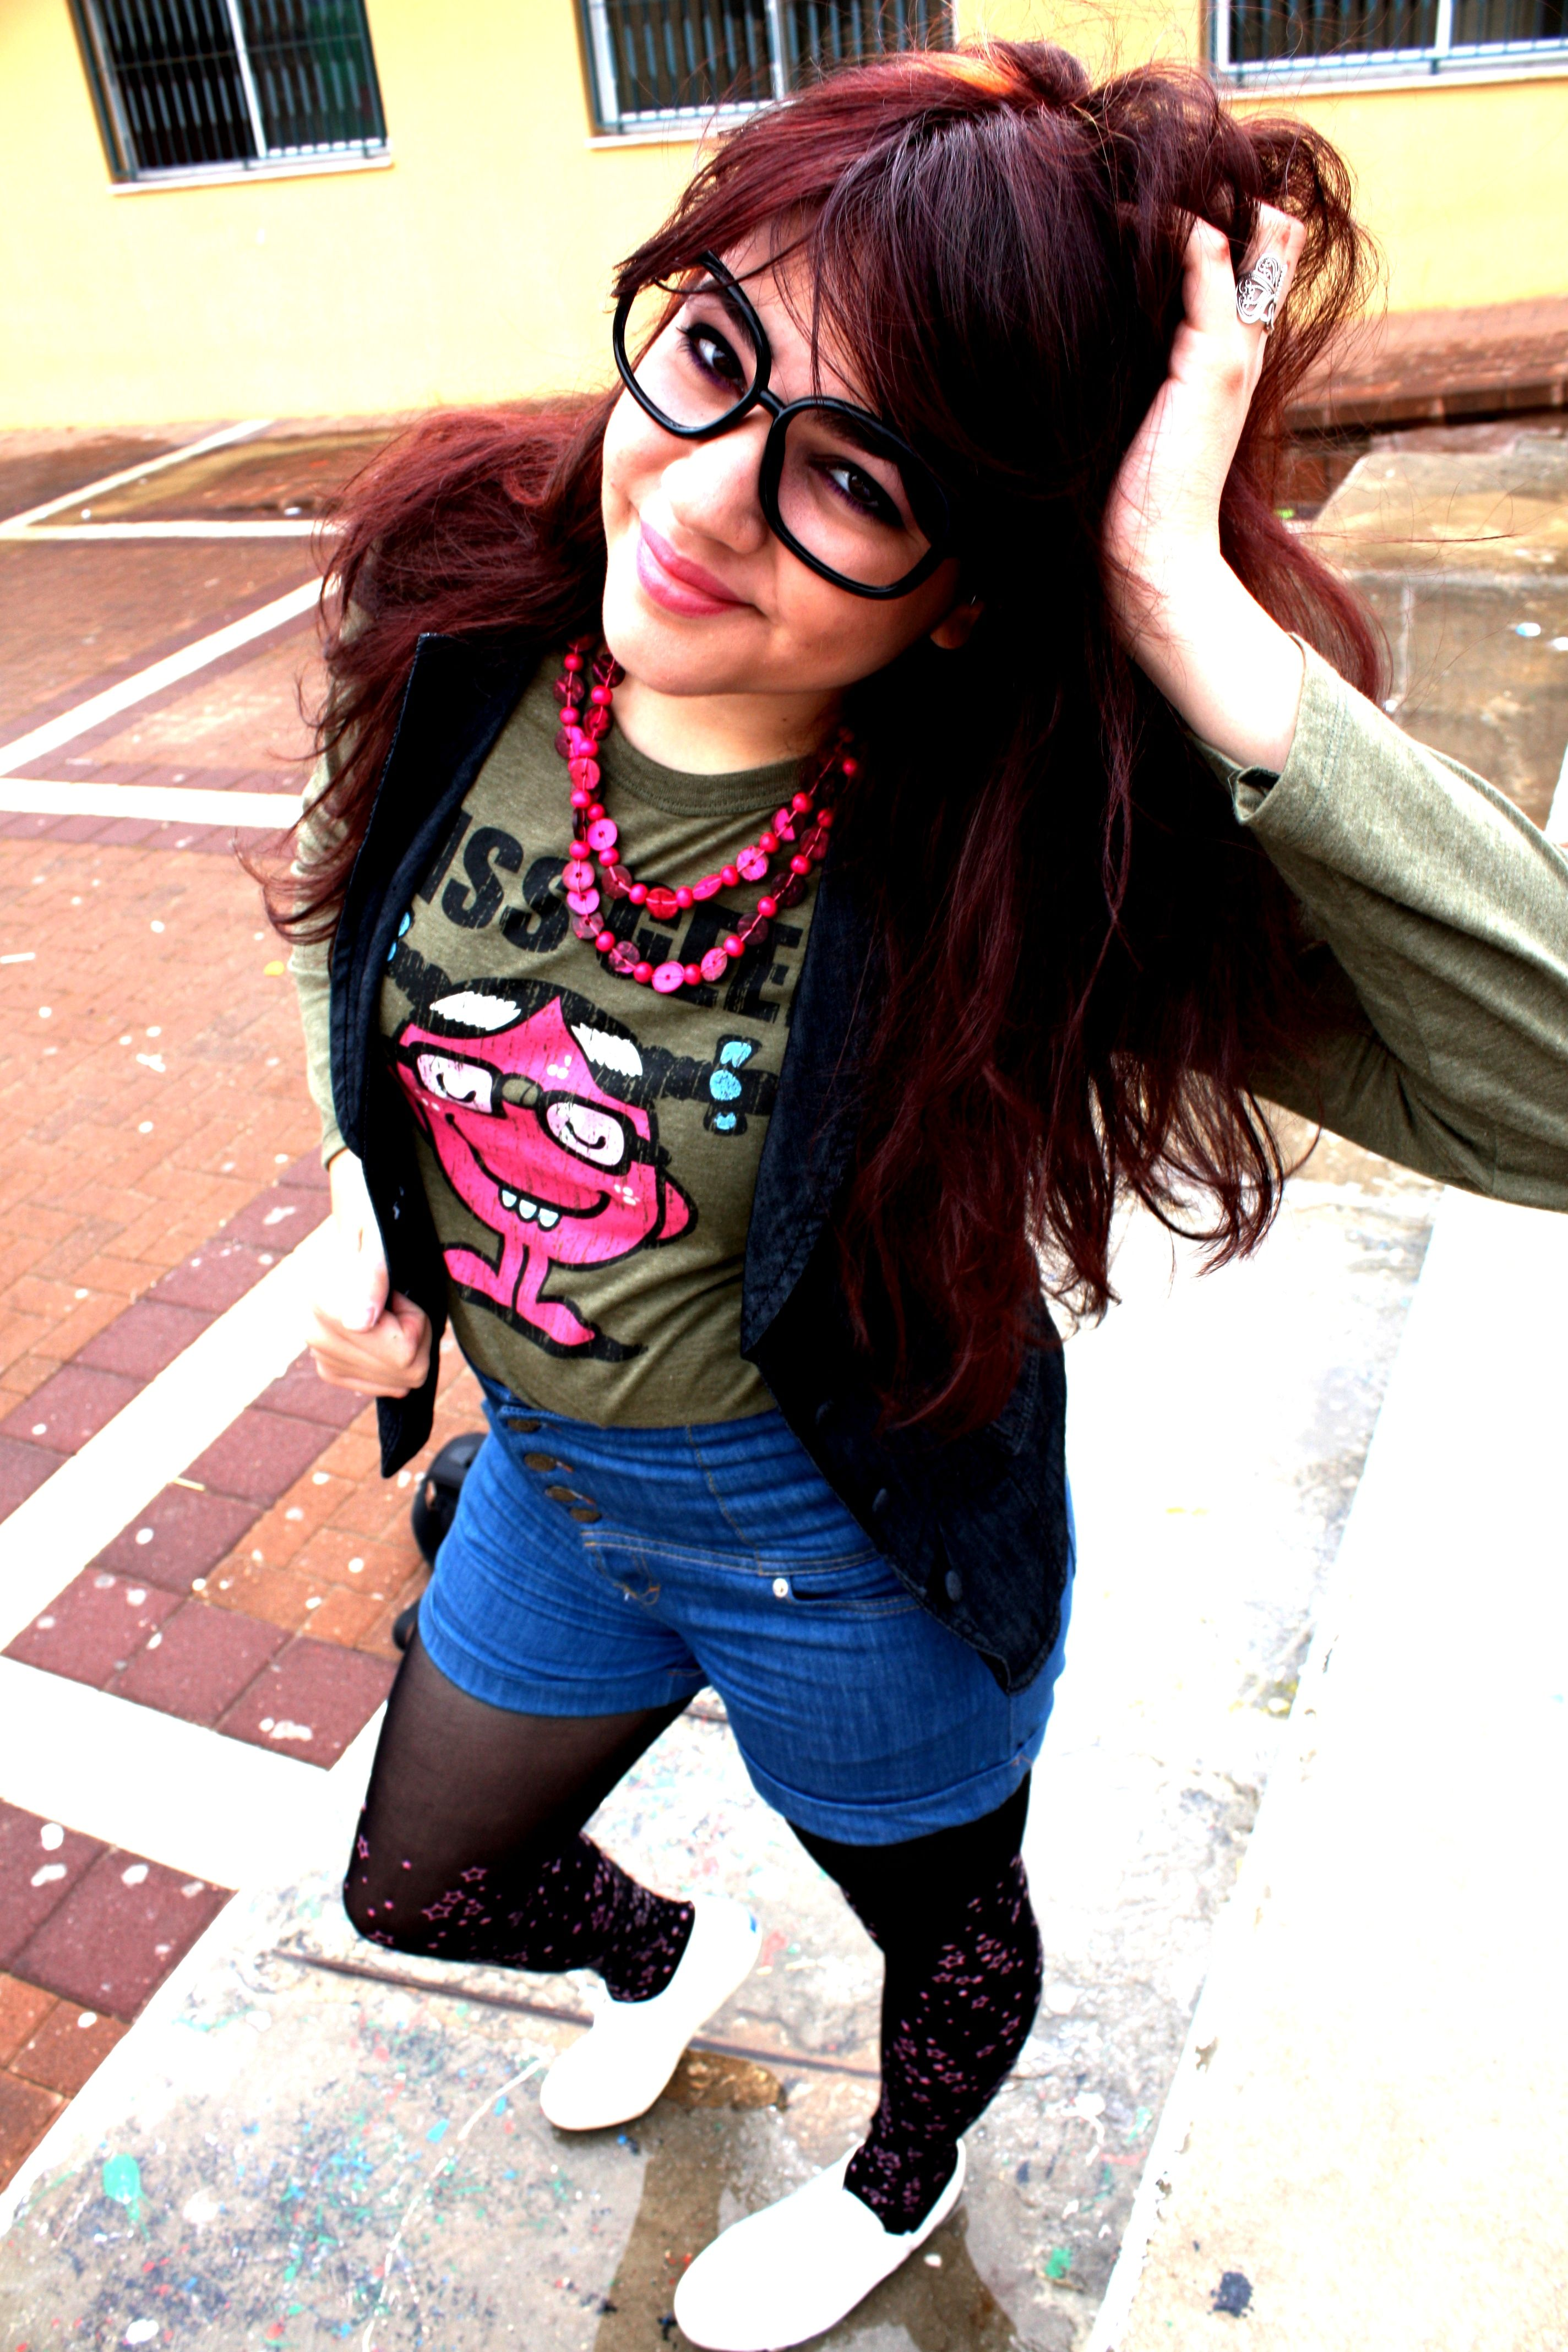 Geek chic   Geek chic fashion, Geek chic, Hipster girl outfits